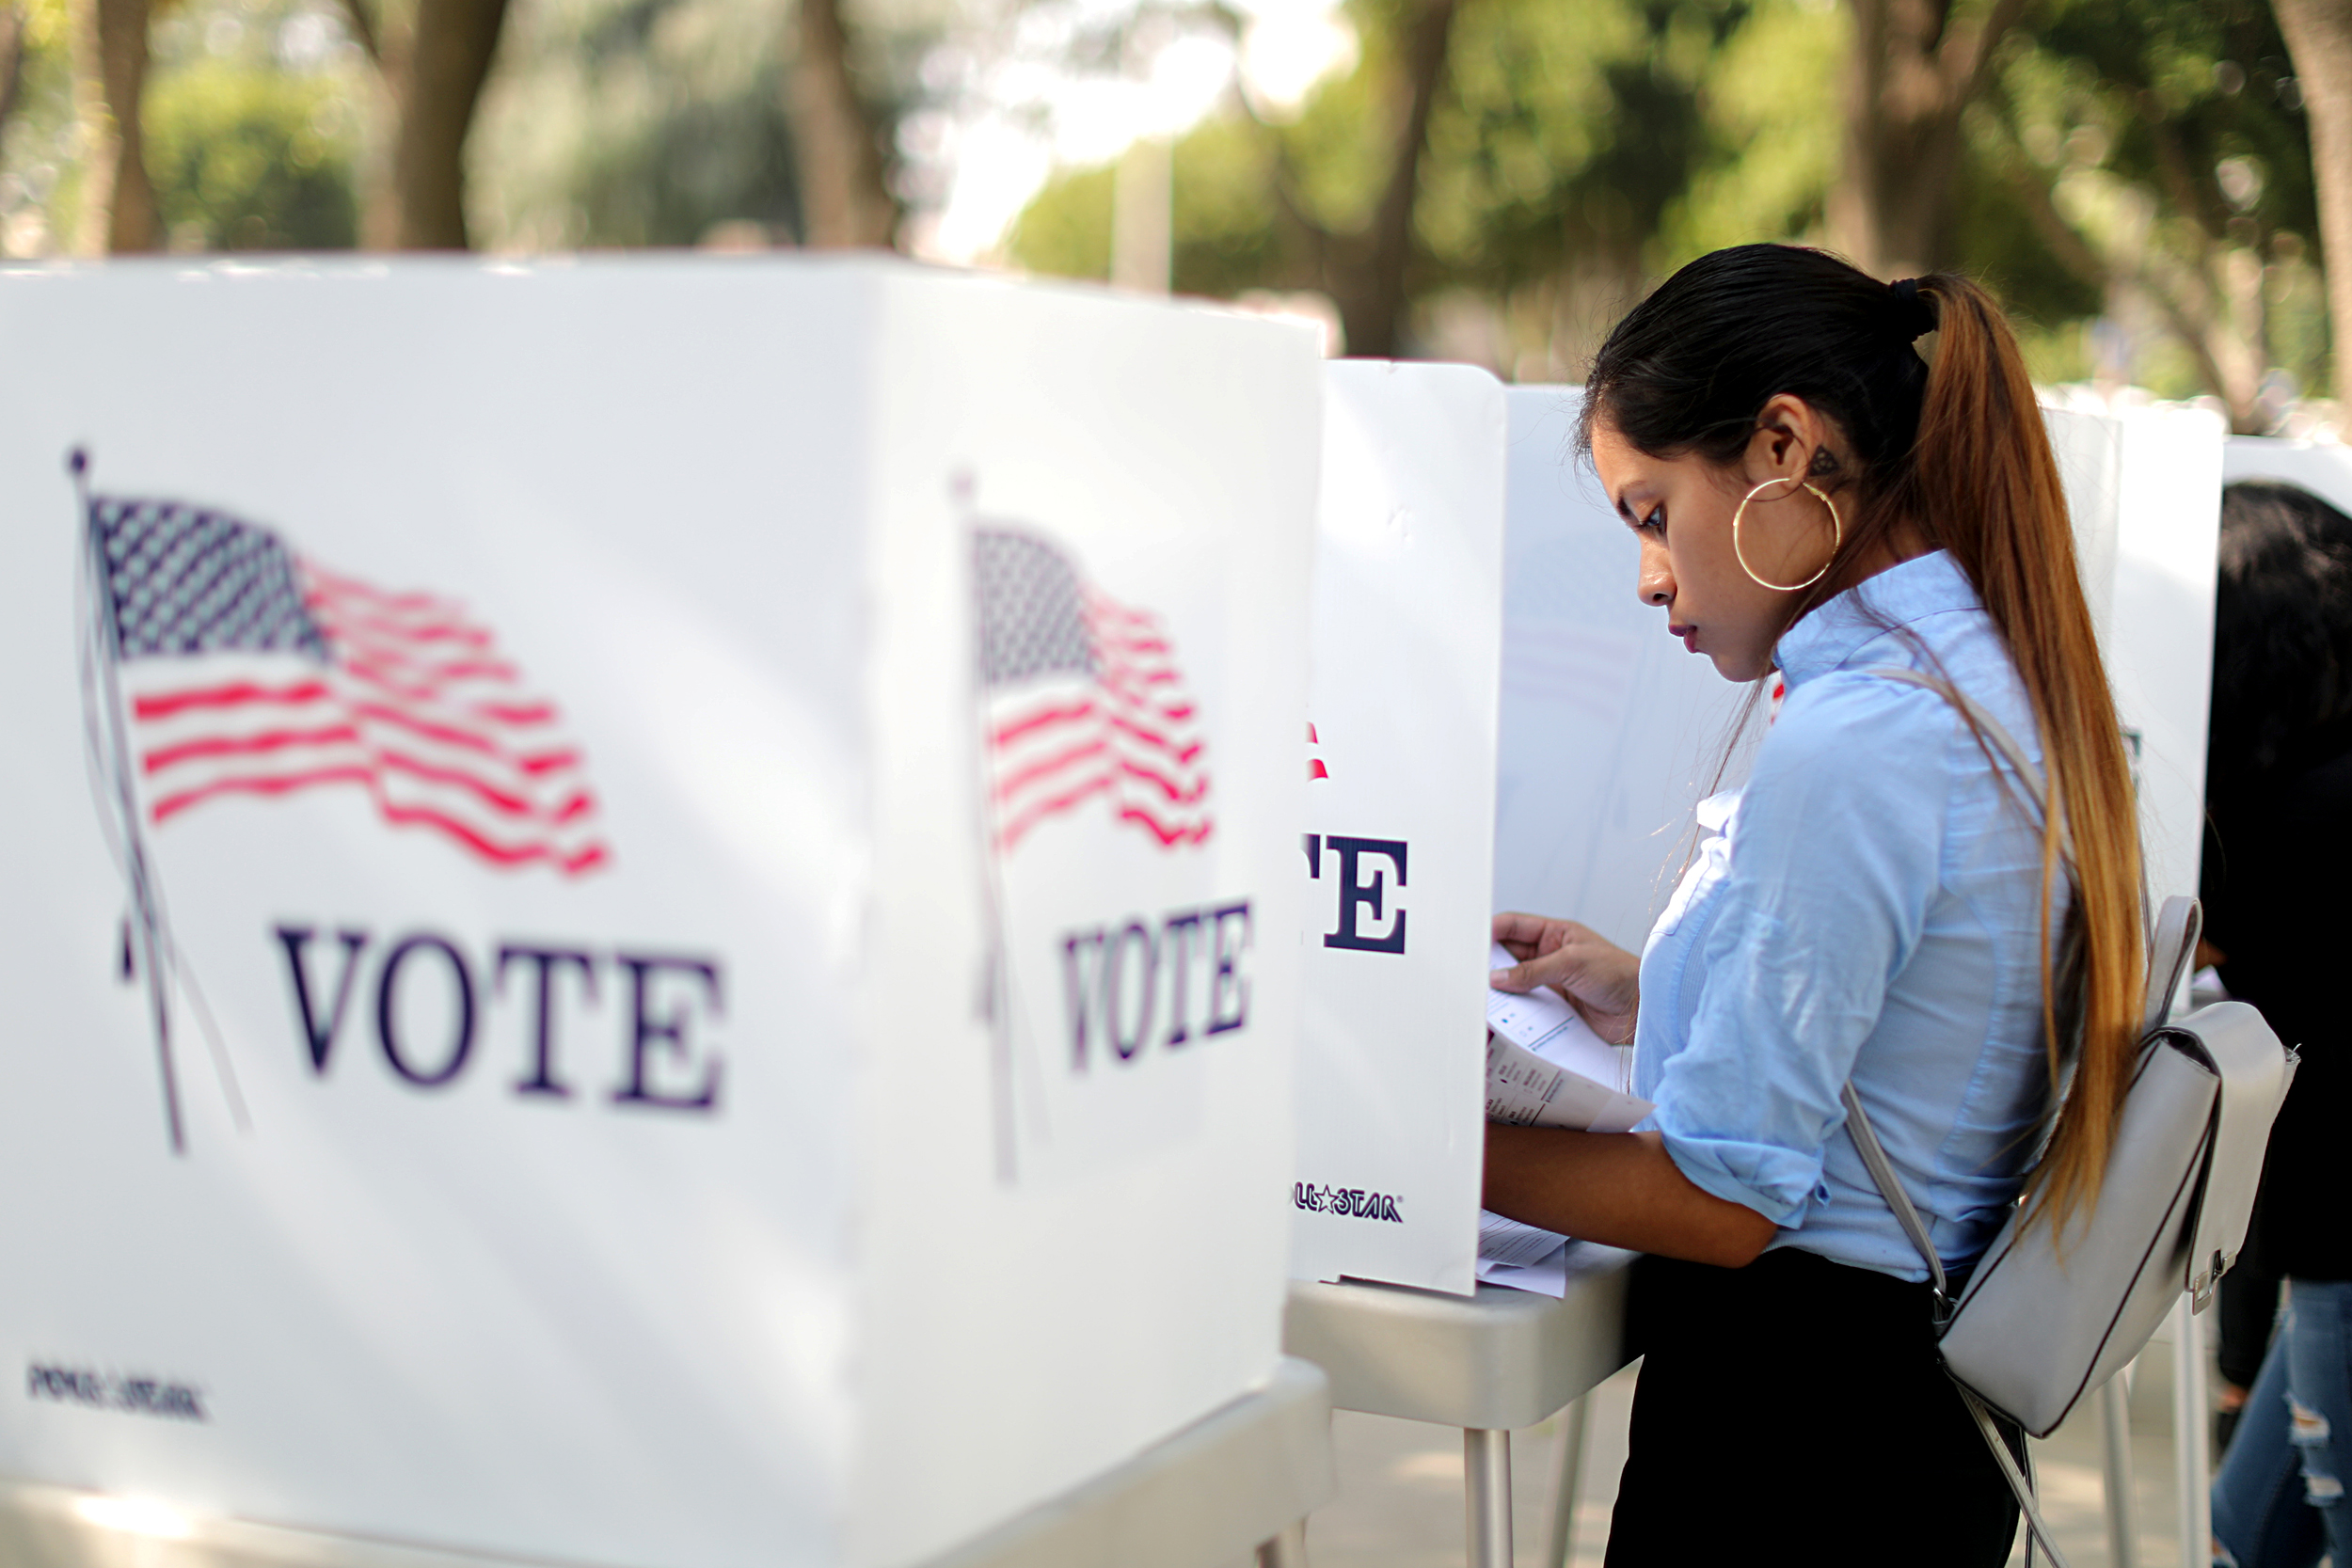 Latino vote surged in 2018, new data shows